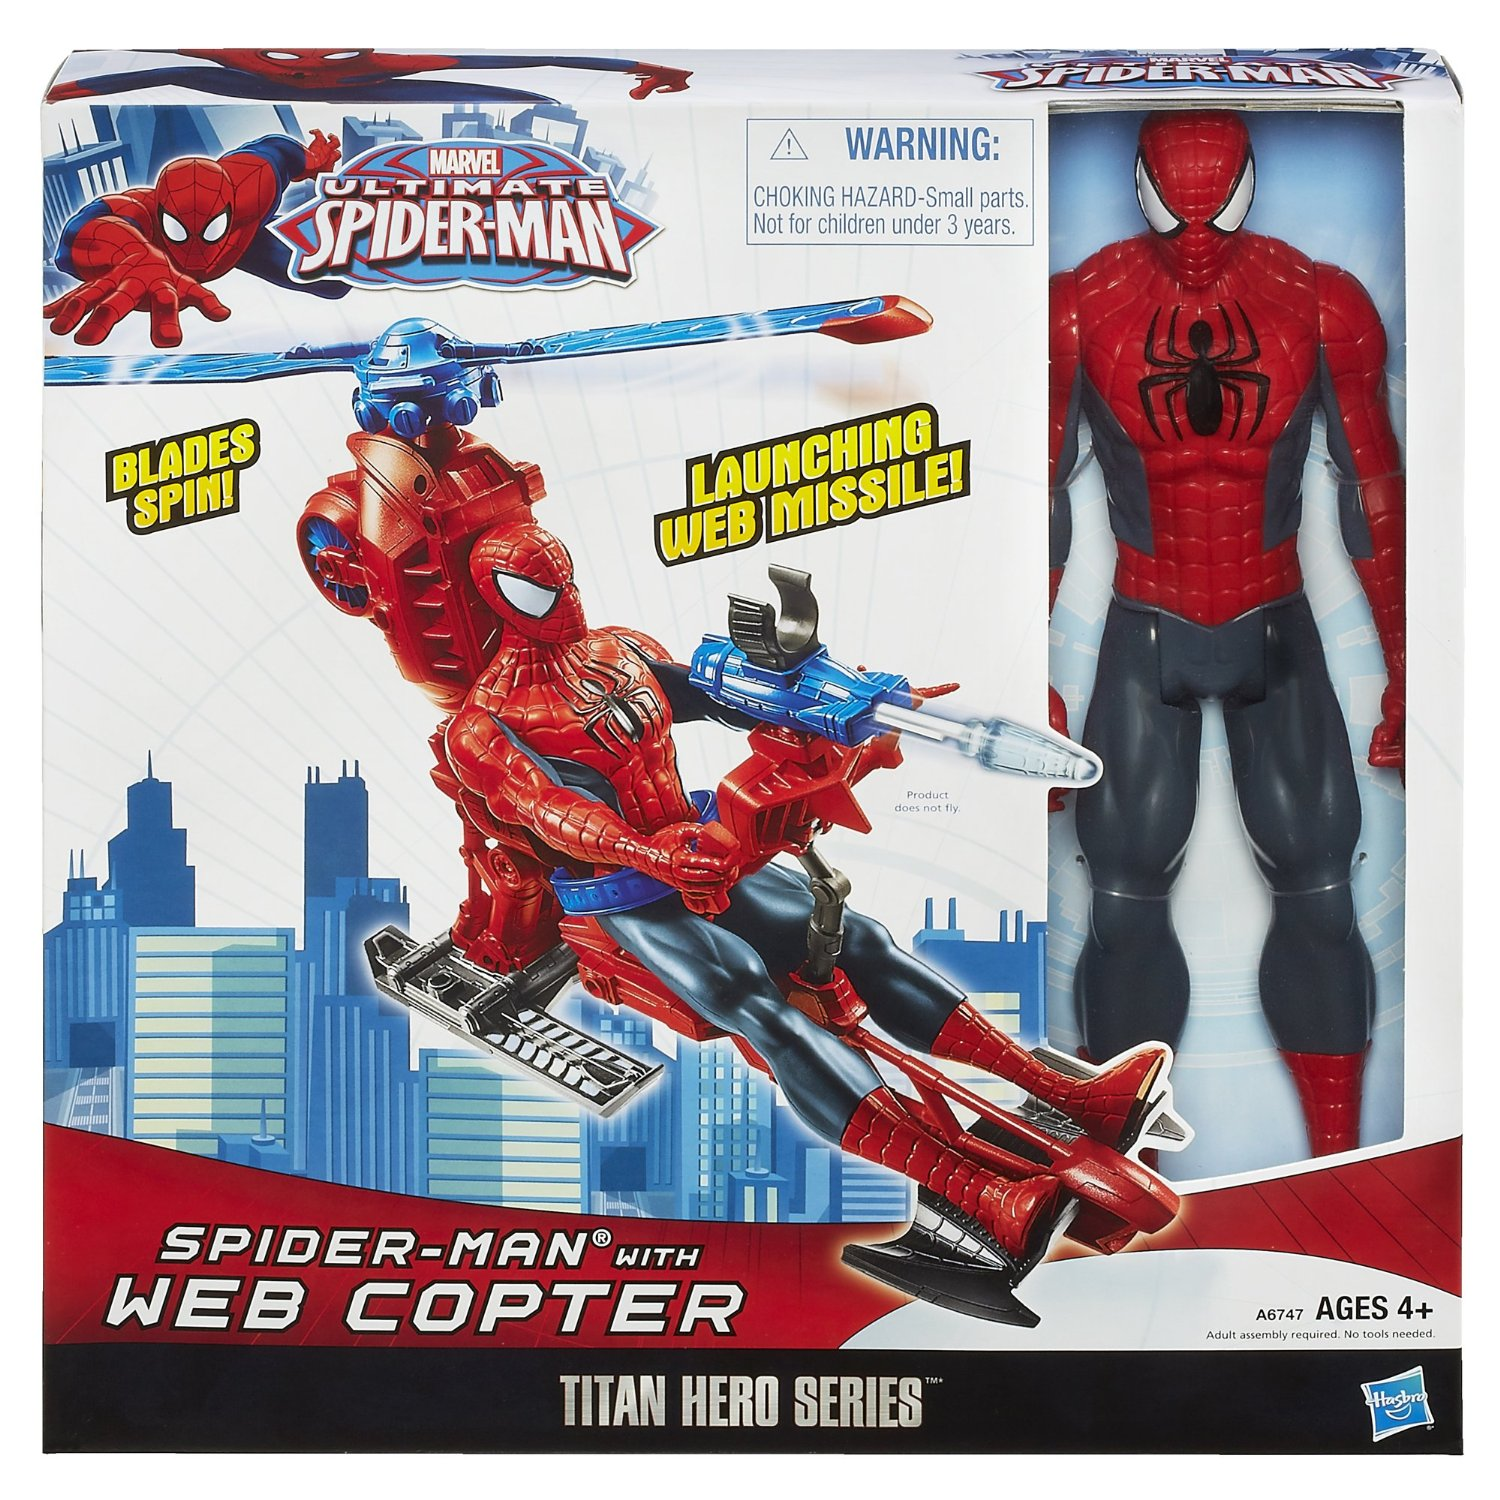 Titan Hero Series Spiderman Figure with Web Copter